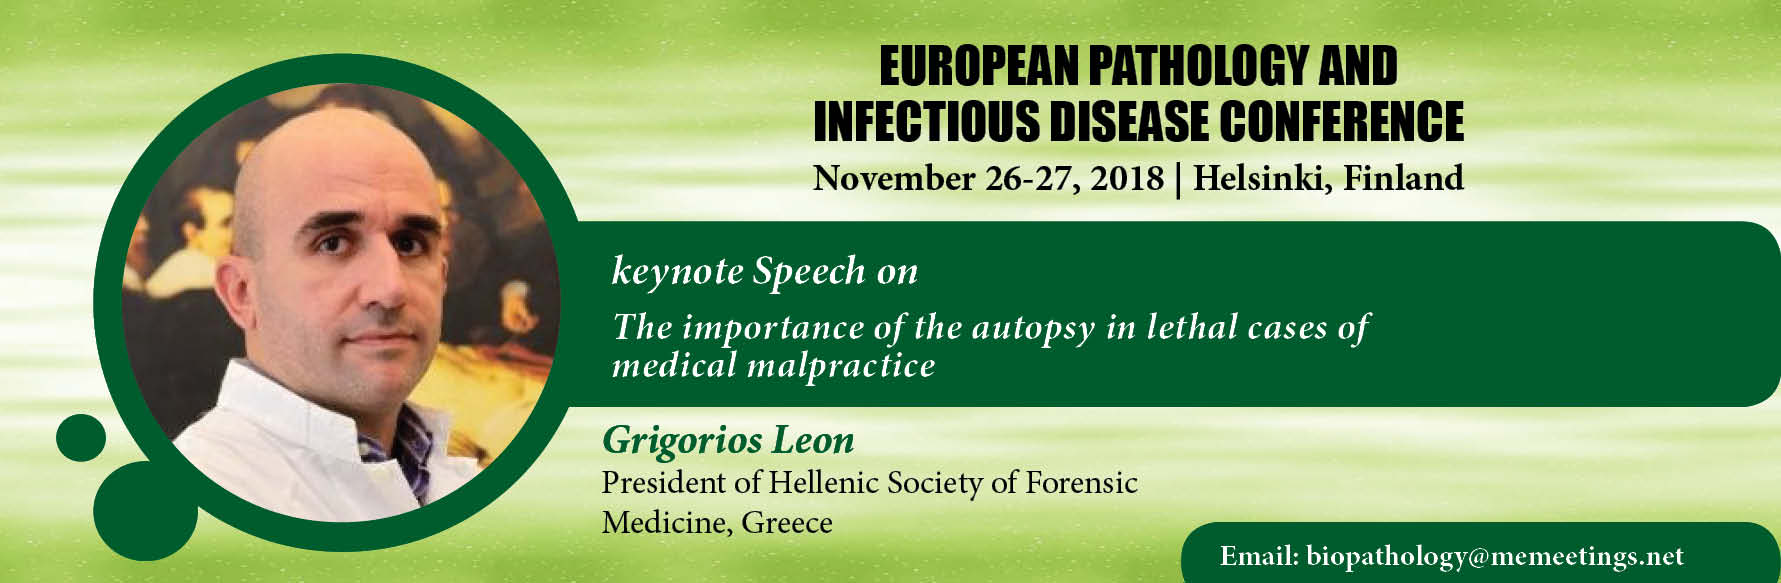 - Euro Pathology Meet 2018